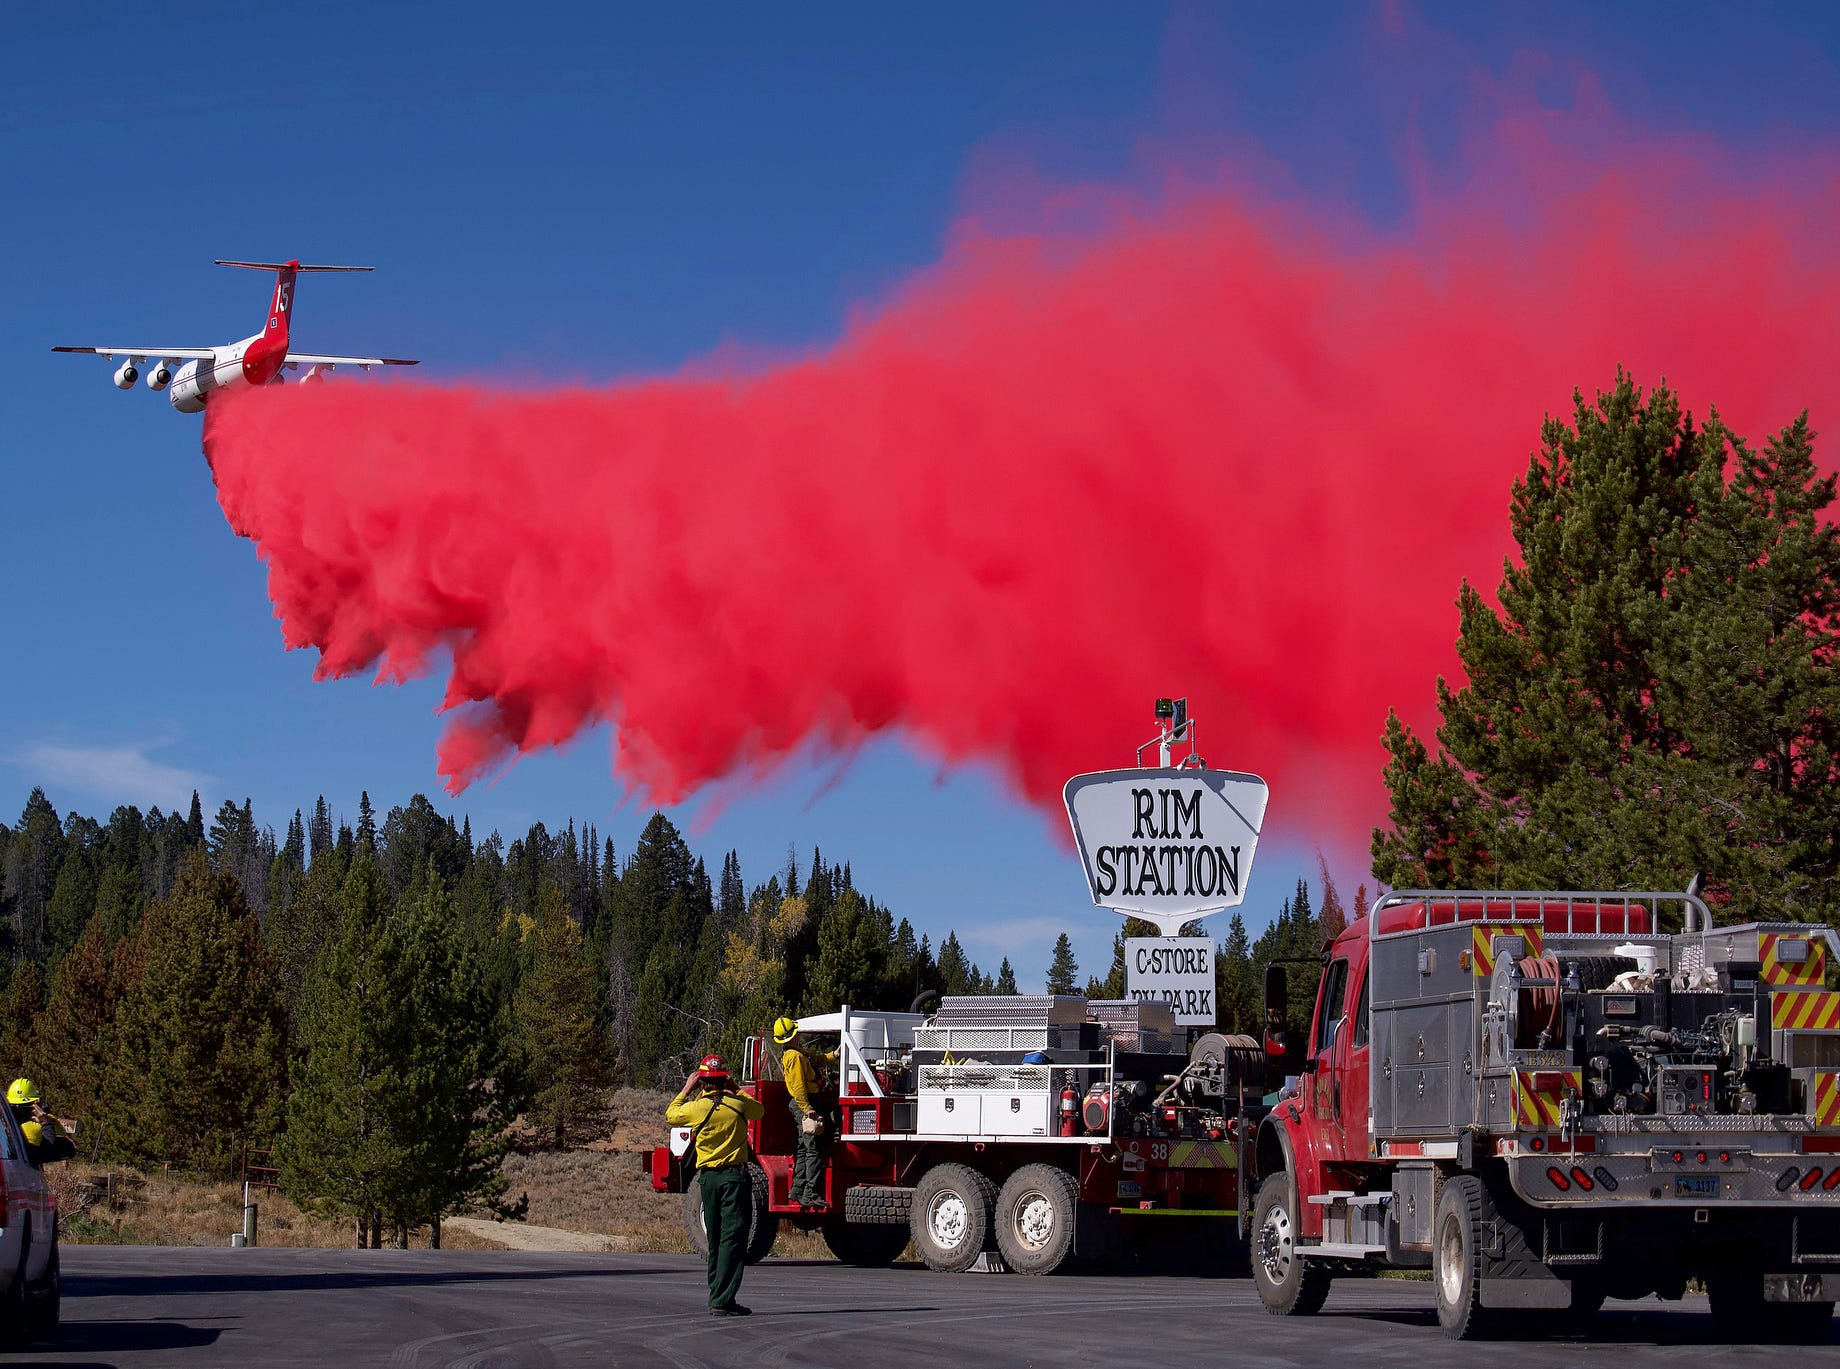 A plane drops fire retardant near the Rim Station, a convenience store and RV park between Bondurant and Daniel, Wyo., on Tuesday, Sept. 25, 2018, during efforts to keep the Roosevelt Fire at bay. The area was evacuated Sunday as the fire approached.